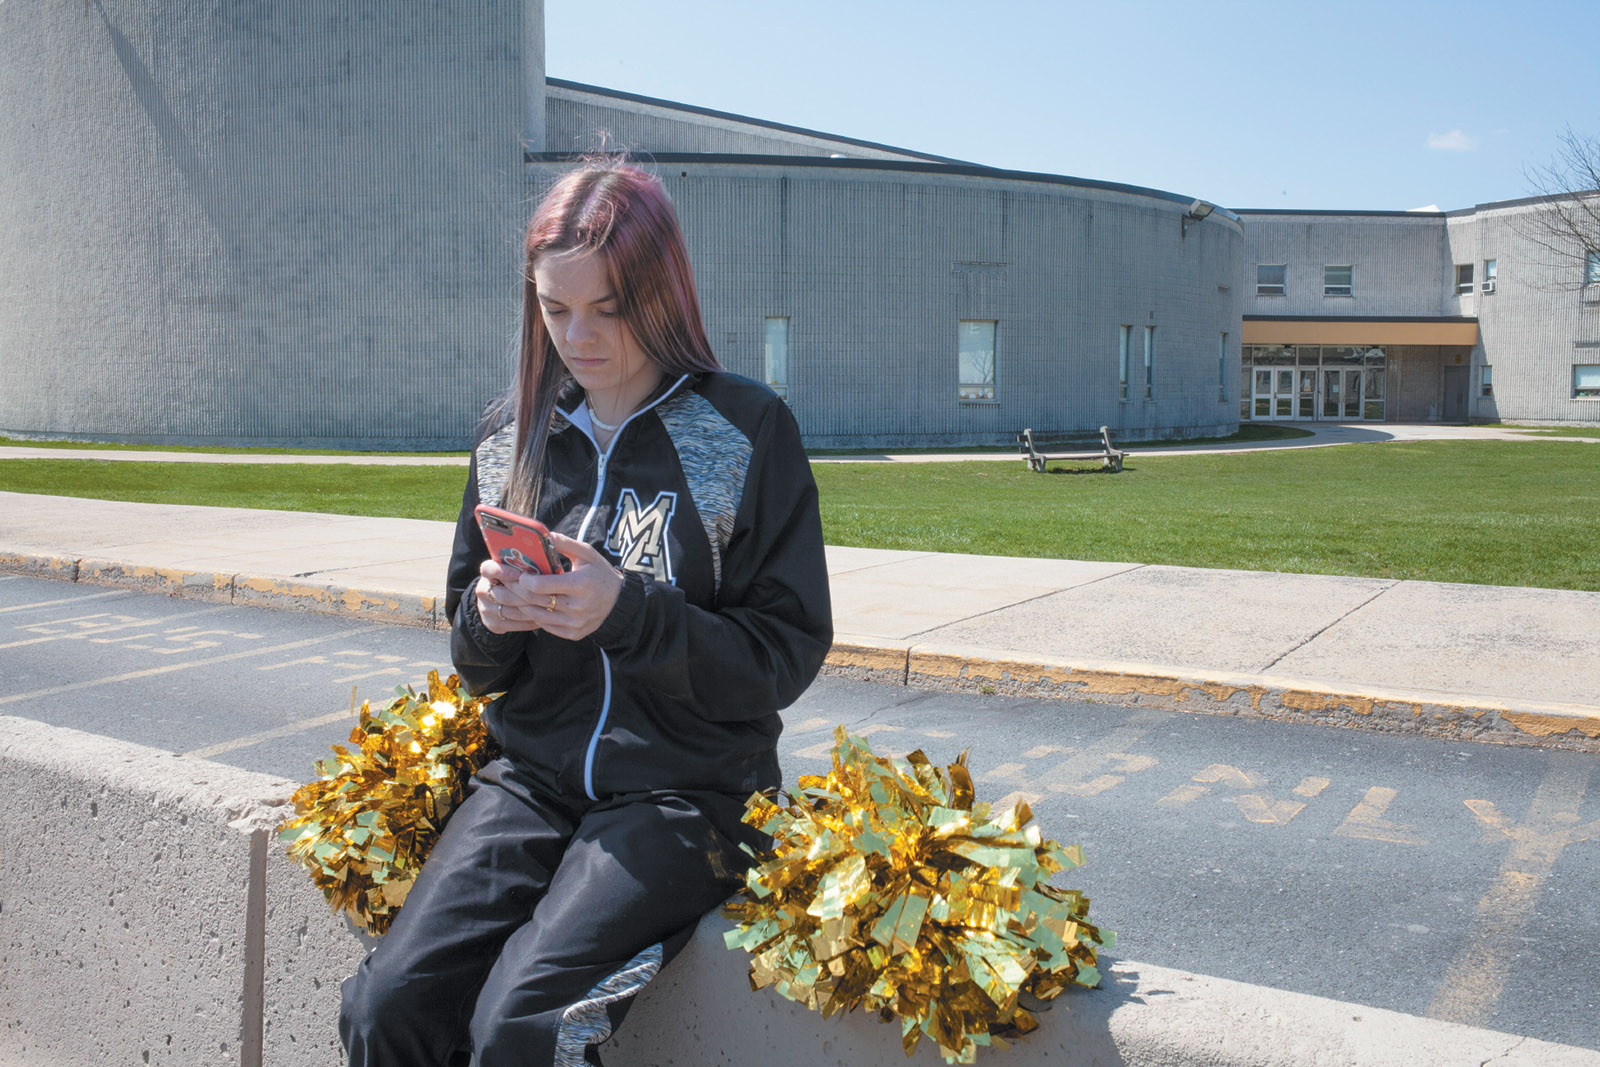 Brandi Levy, a former cheerleader at Mahanoy Area High School and the plaintiff in the Supreme Court free speech case Mahanoy Area School District v. B.L.